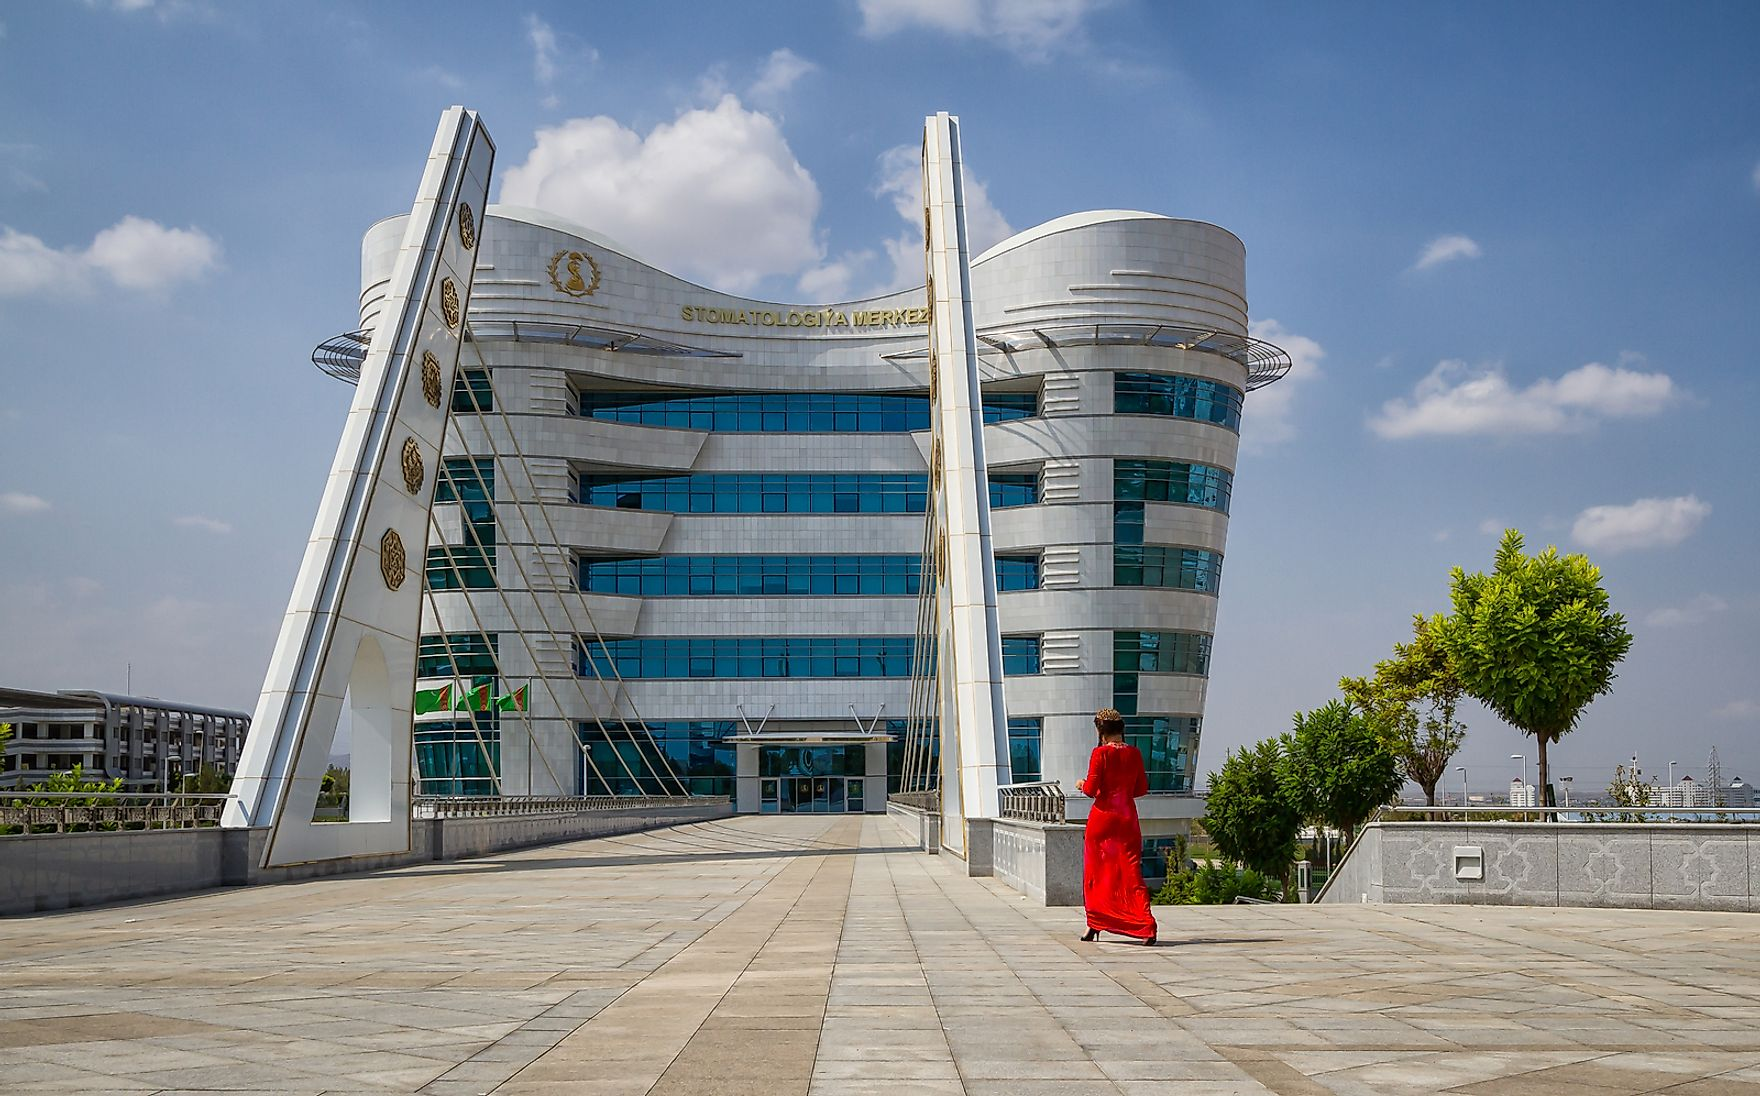 This dental center in Turkmenistan is shaped like an actual tooth molar. A quest to find out if other medical buildings were shaped like organs was inconclusive. Jakub Buza / Shutterstock.com.